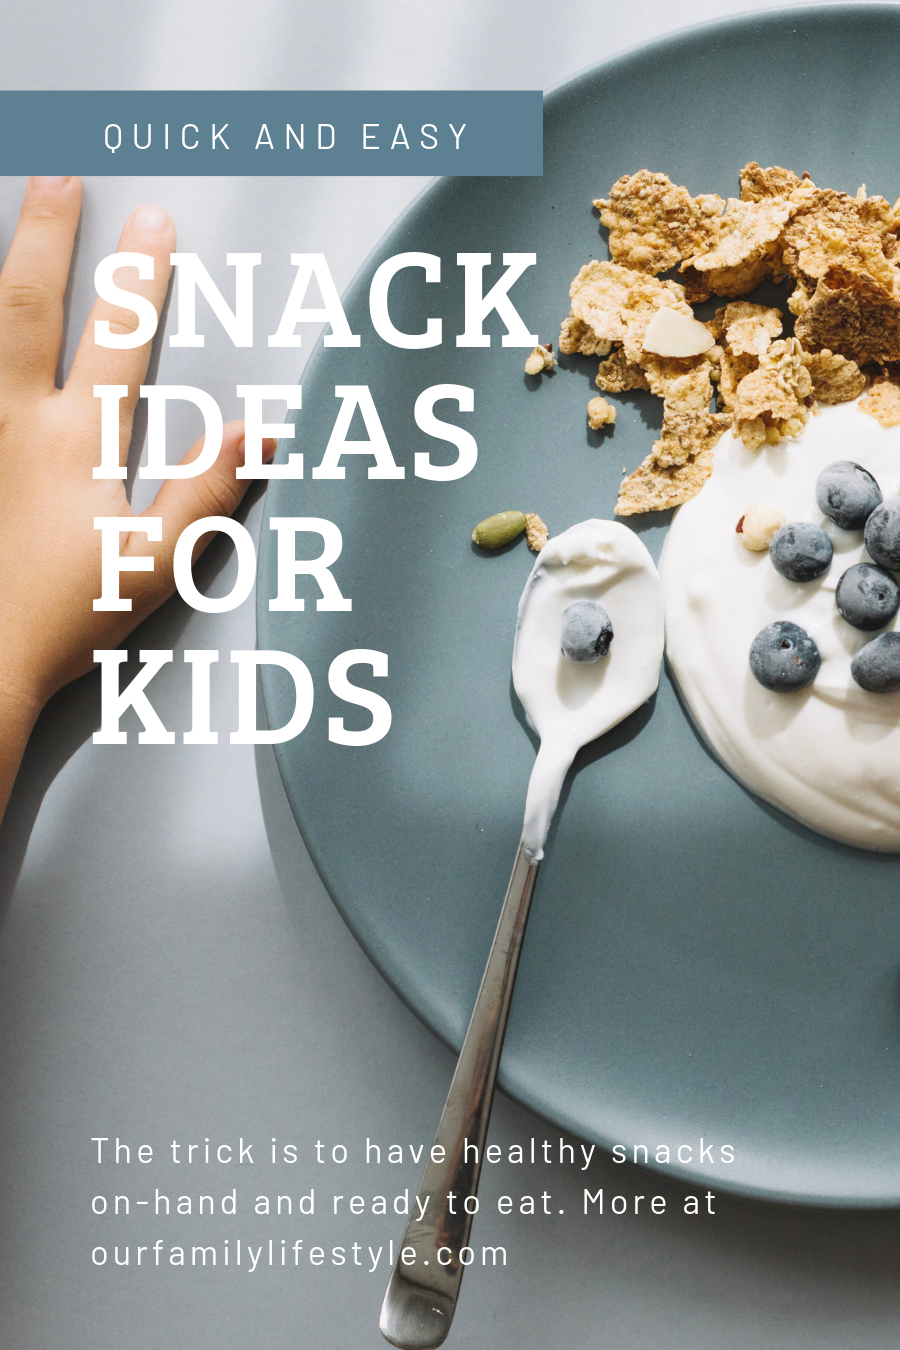 Quick and Easy Snack Ideas for Kids